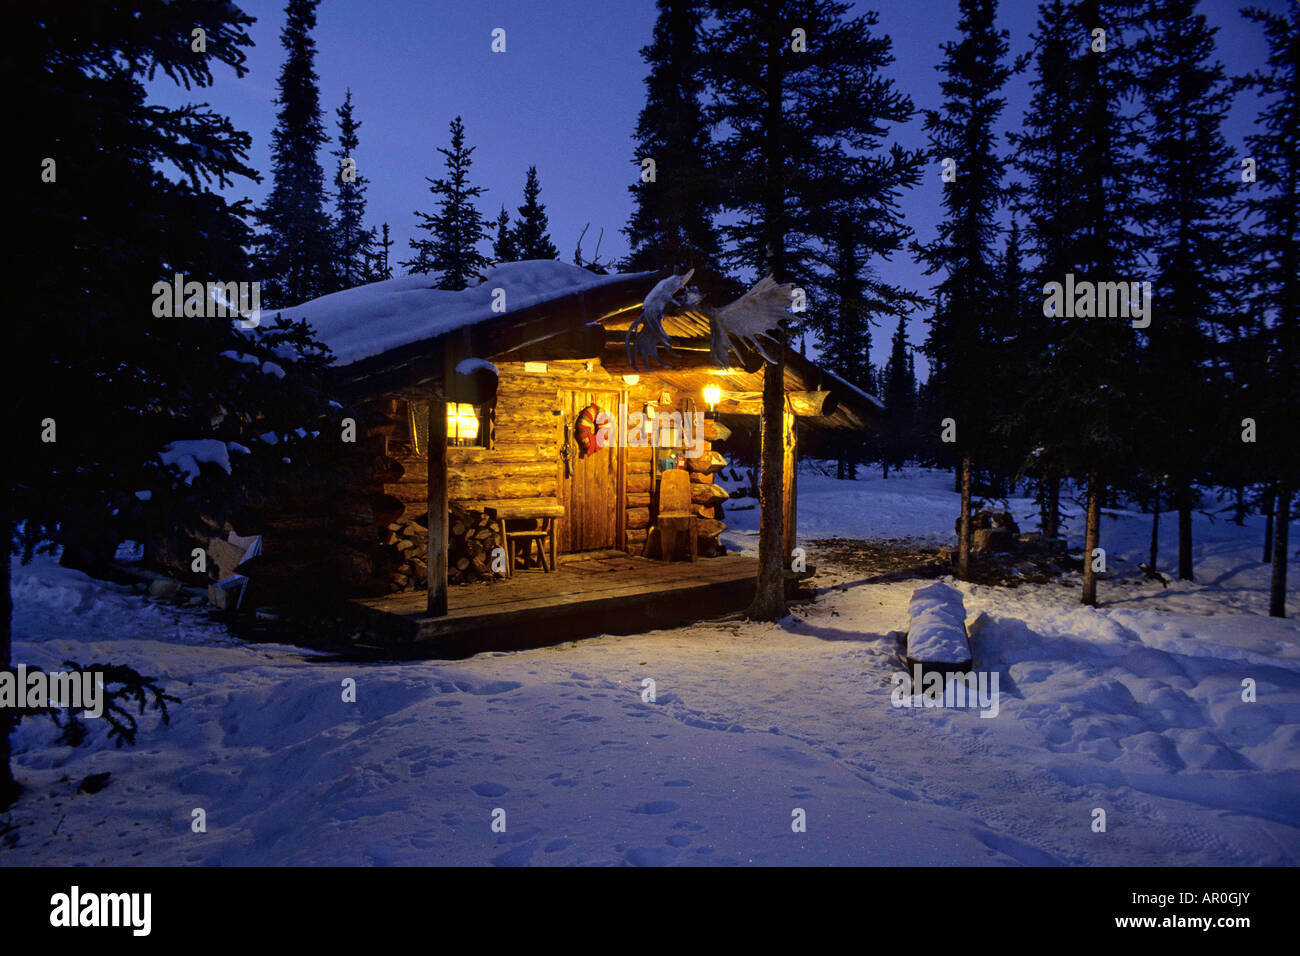 Interior alaska log cabin forest winter porch light snow for Alaska cottage